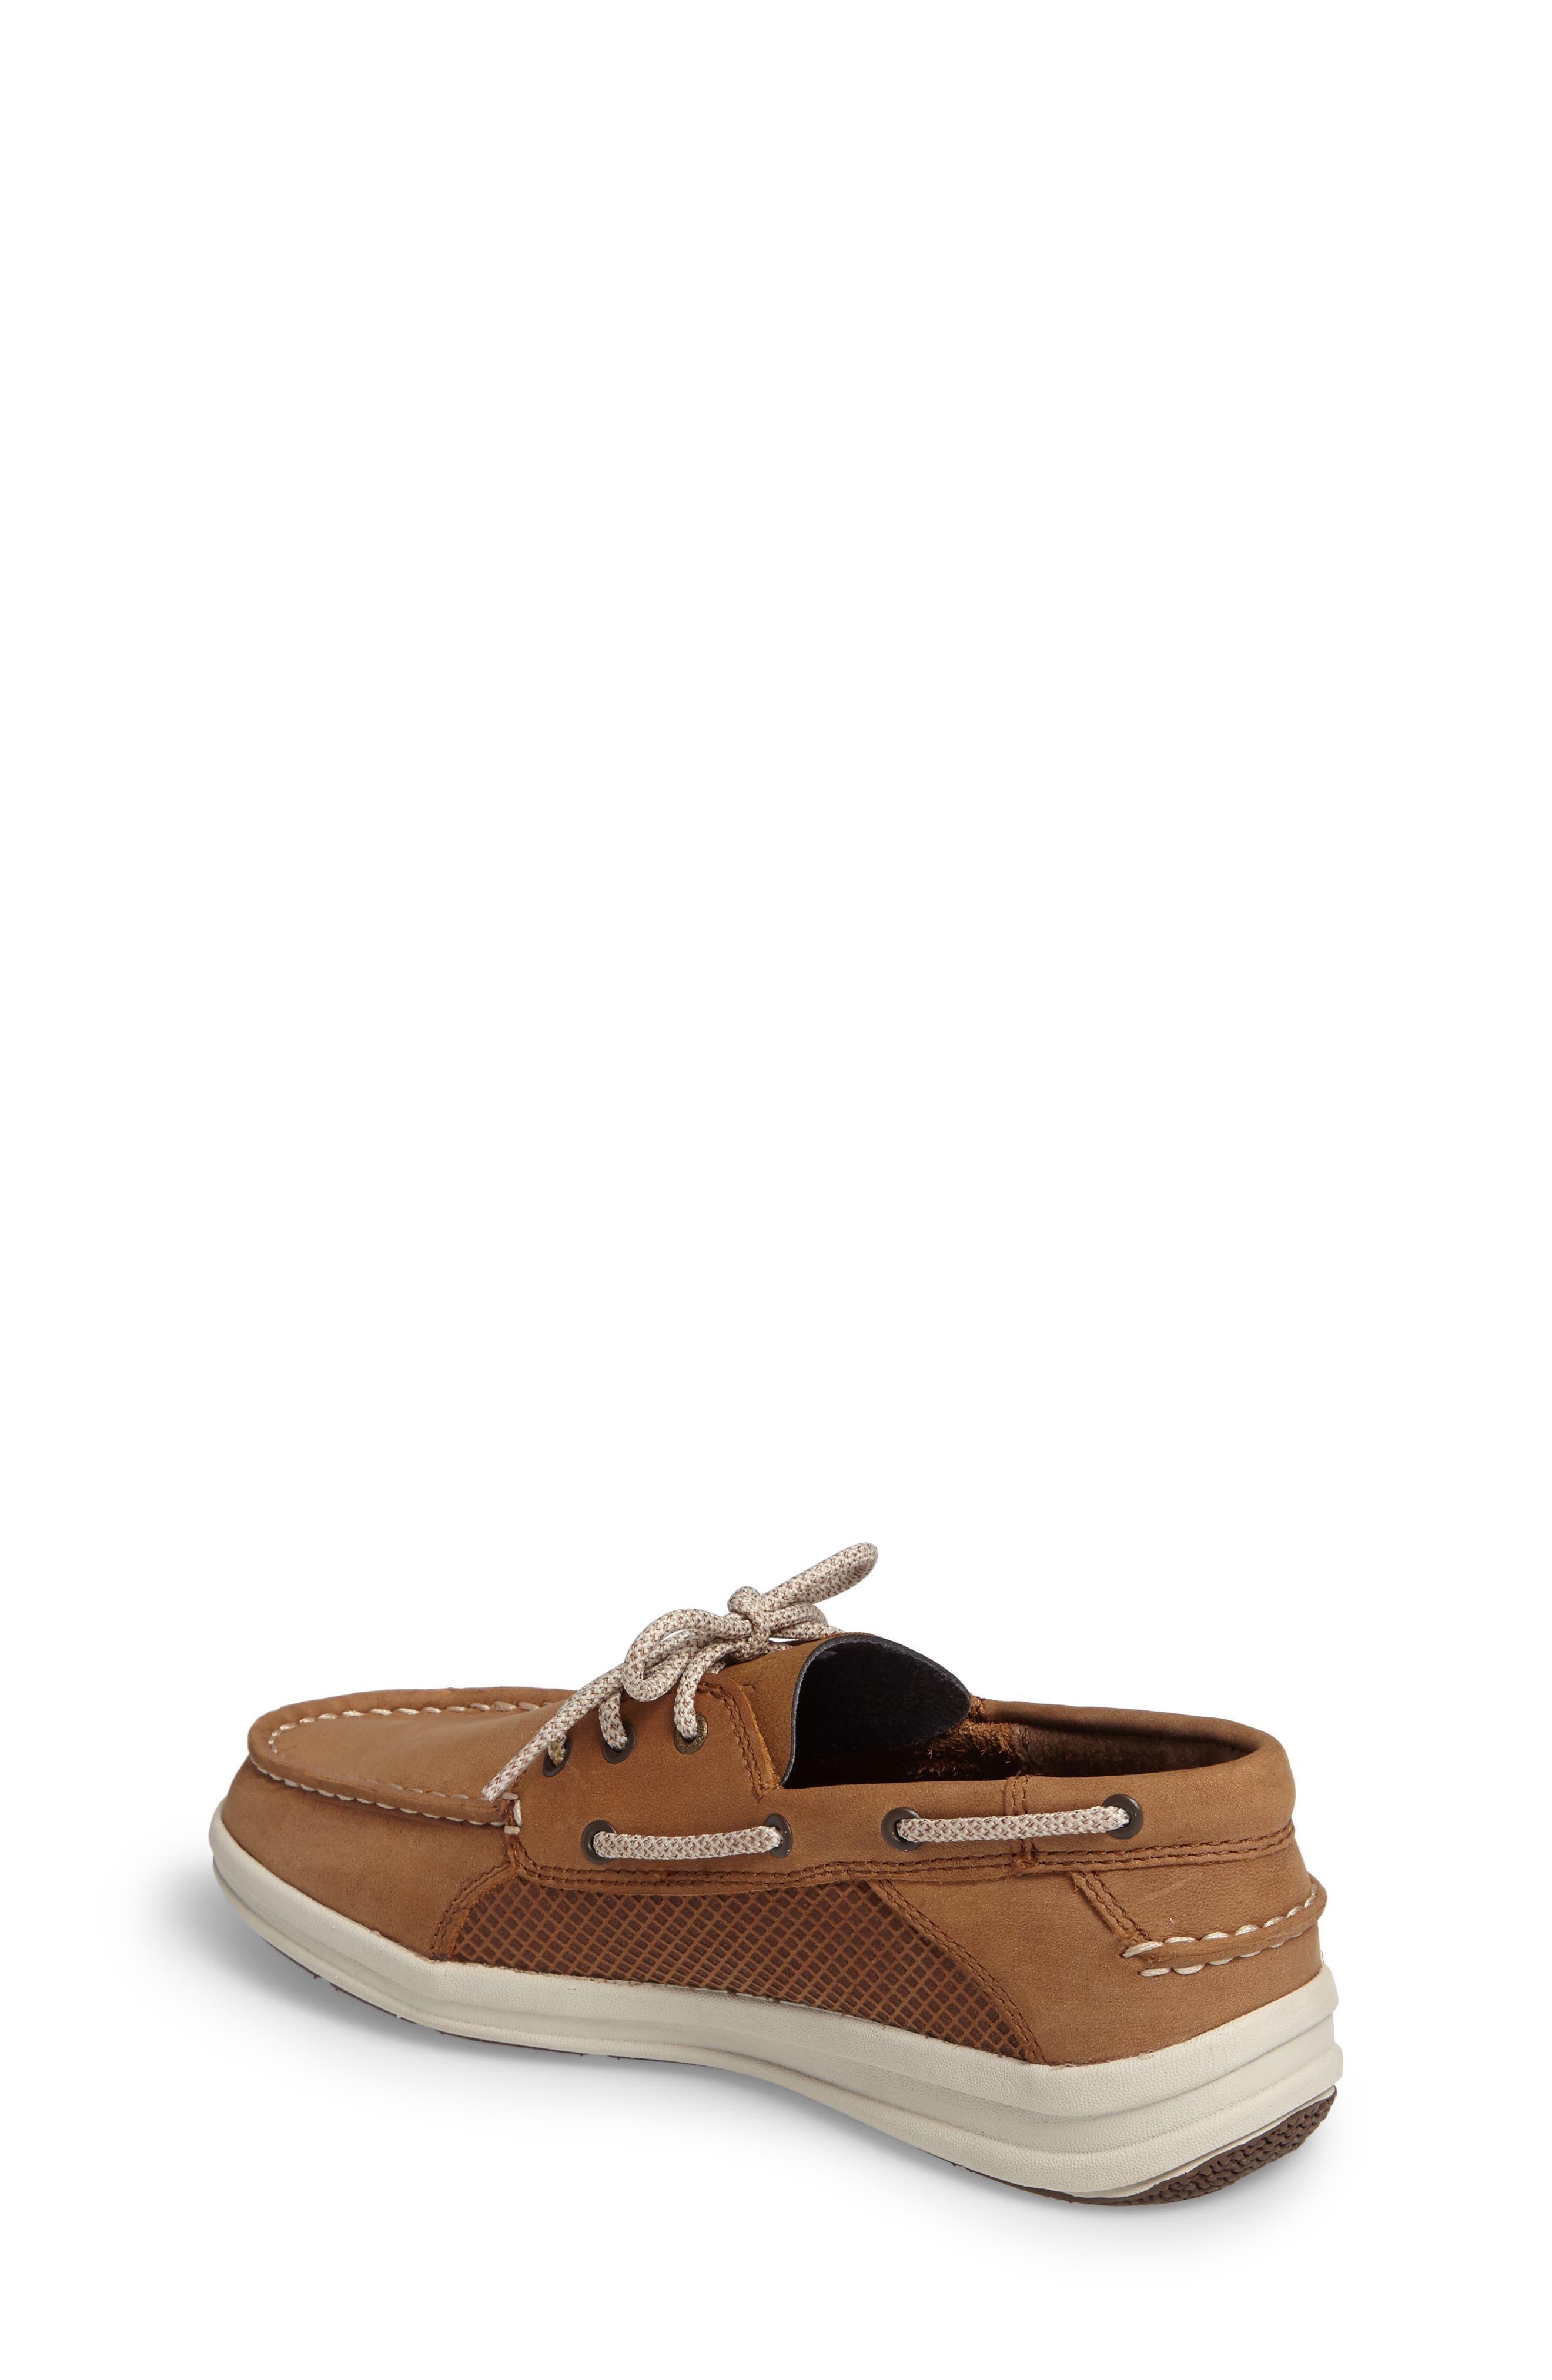 Sperry Gamefish Boat Shoe,                             Alternate thumbnail 2, color,                             Dark Tan